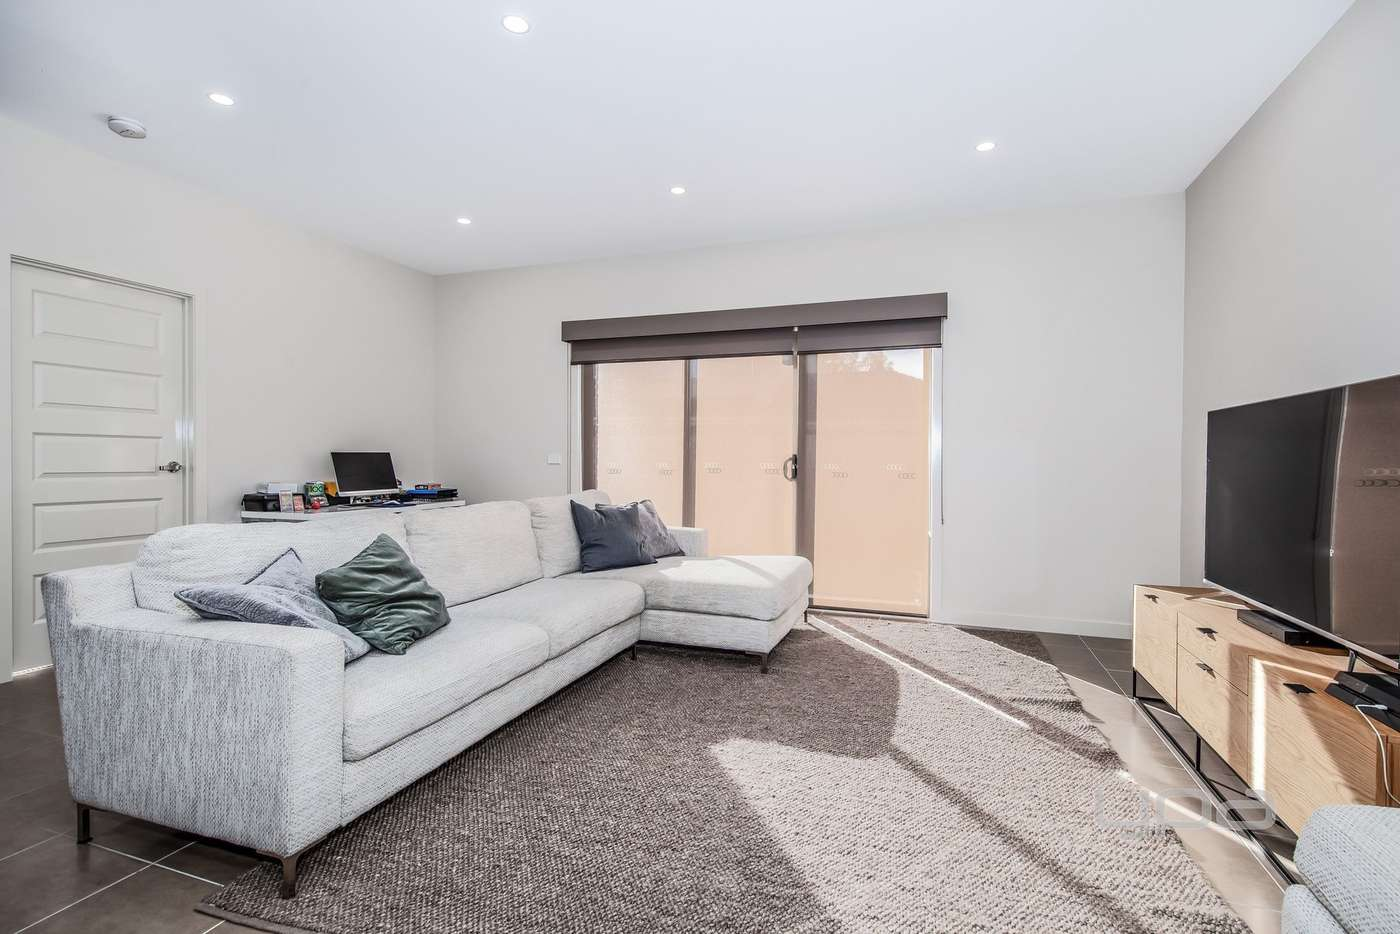 Seventh view of Homely house listing, 7/3 Stratheden Court, Sydenham VIC 3037